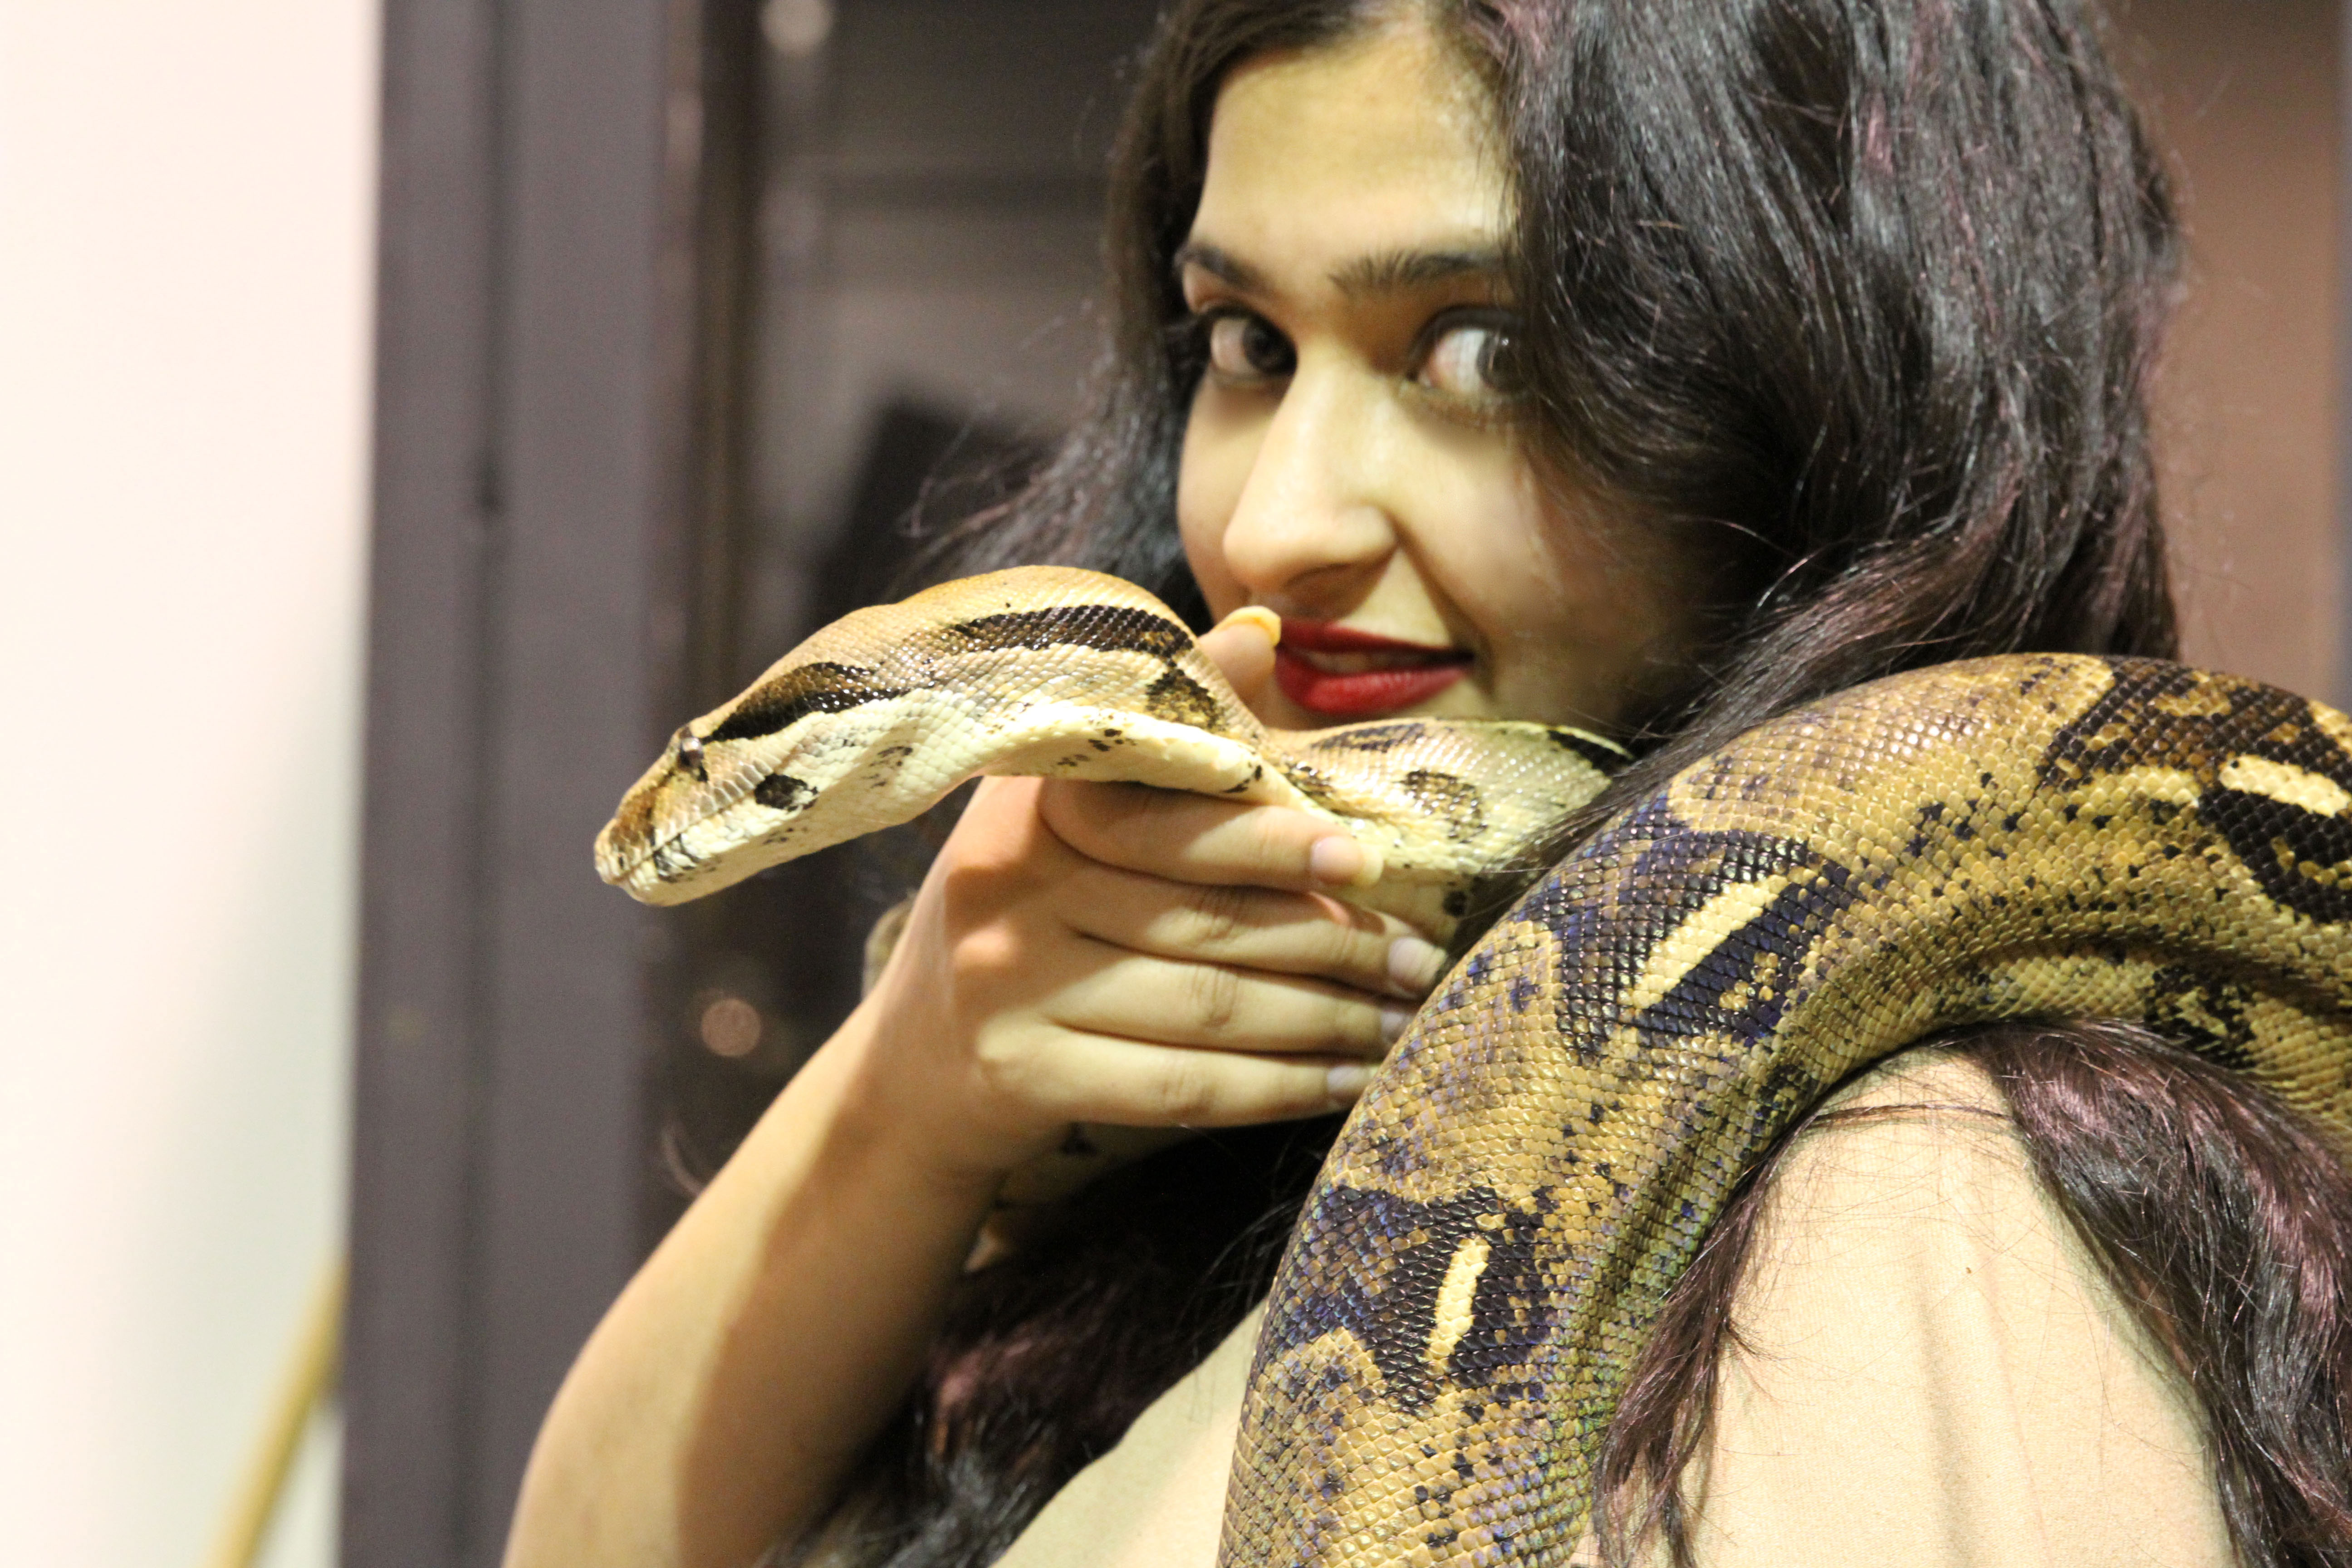 The Screen Girls Sarah holding ball python